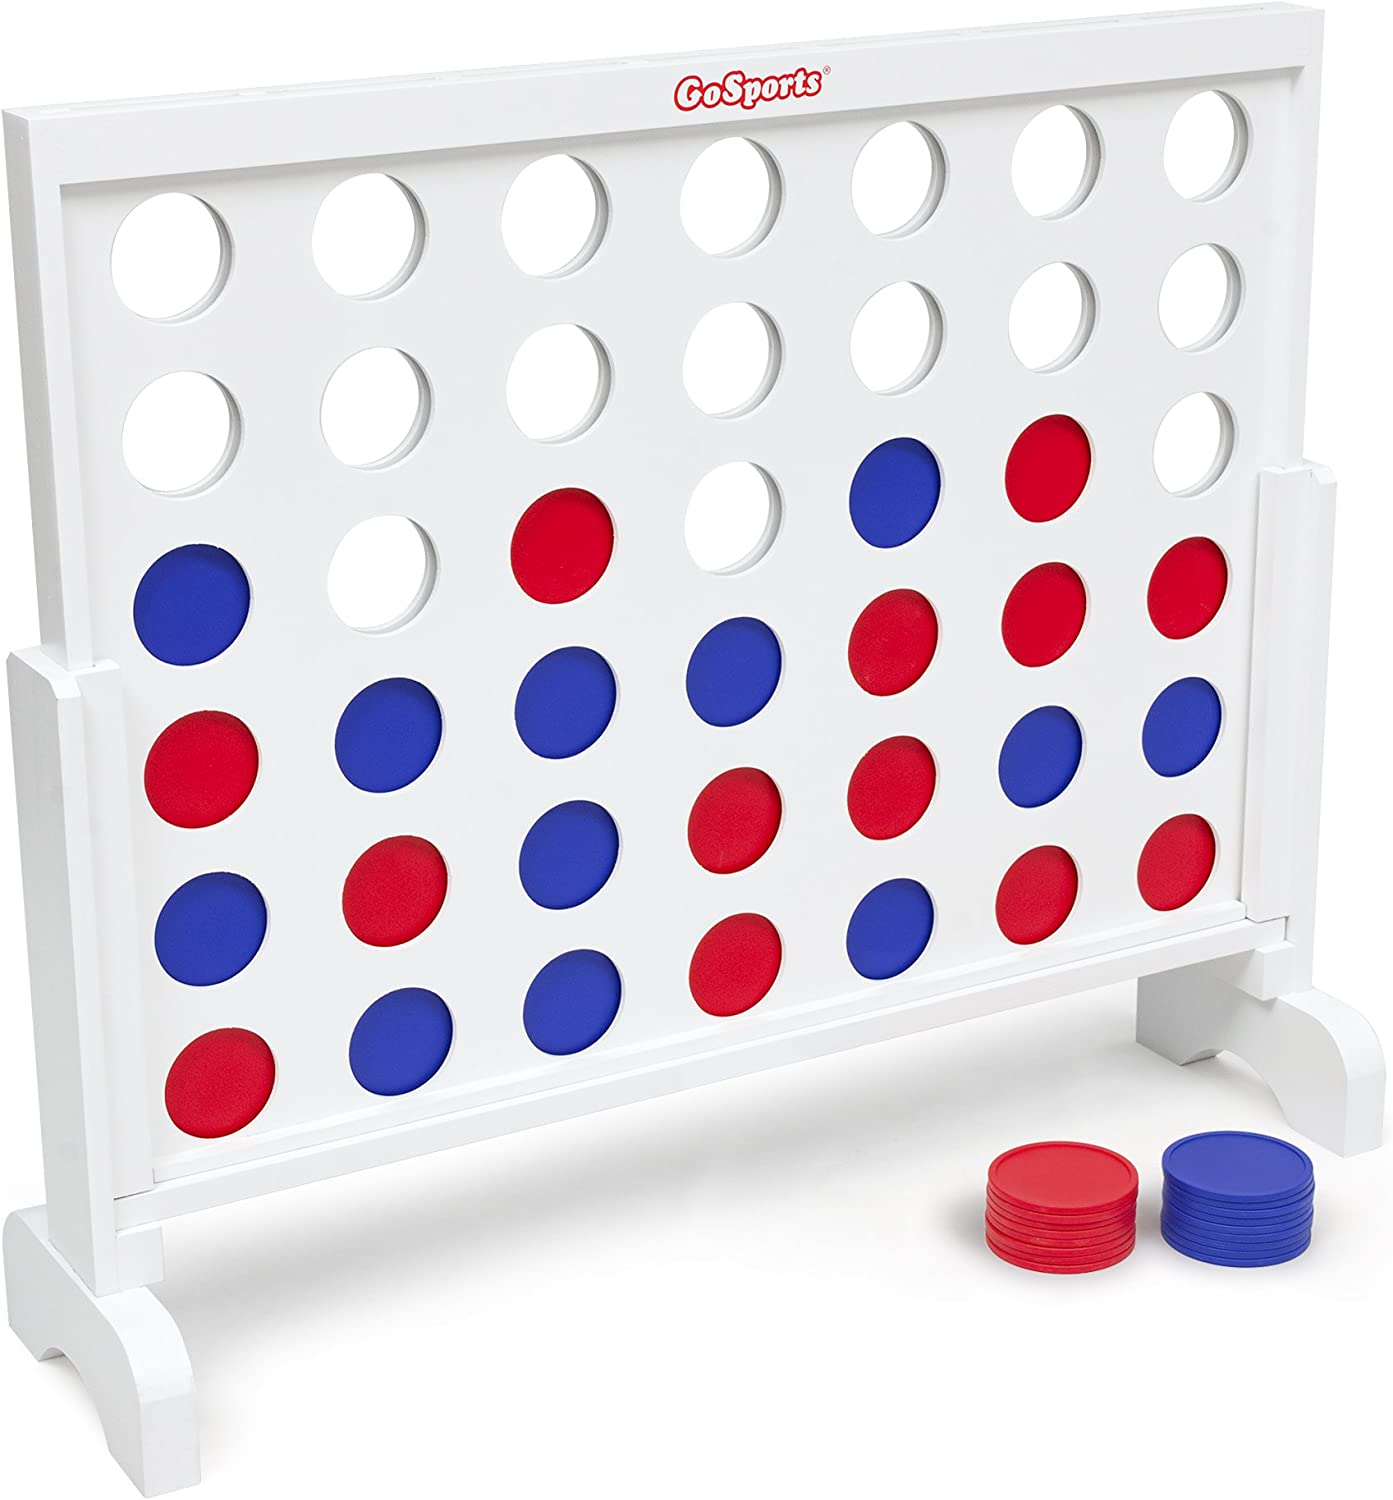 Jumbo 4 Connect Family Fun with Coins Choose Between Classic White or Dark Stain GoSports Giant Wooden 4 in a Row Game 3 Foot Width Case and Rules